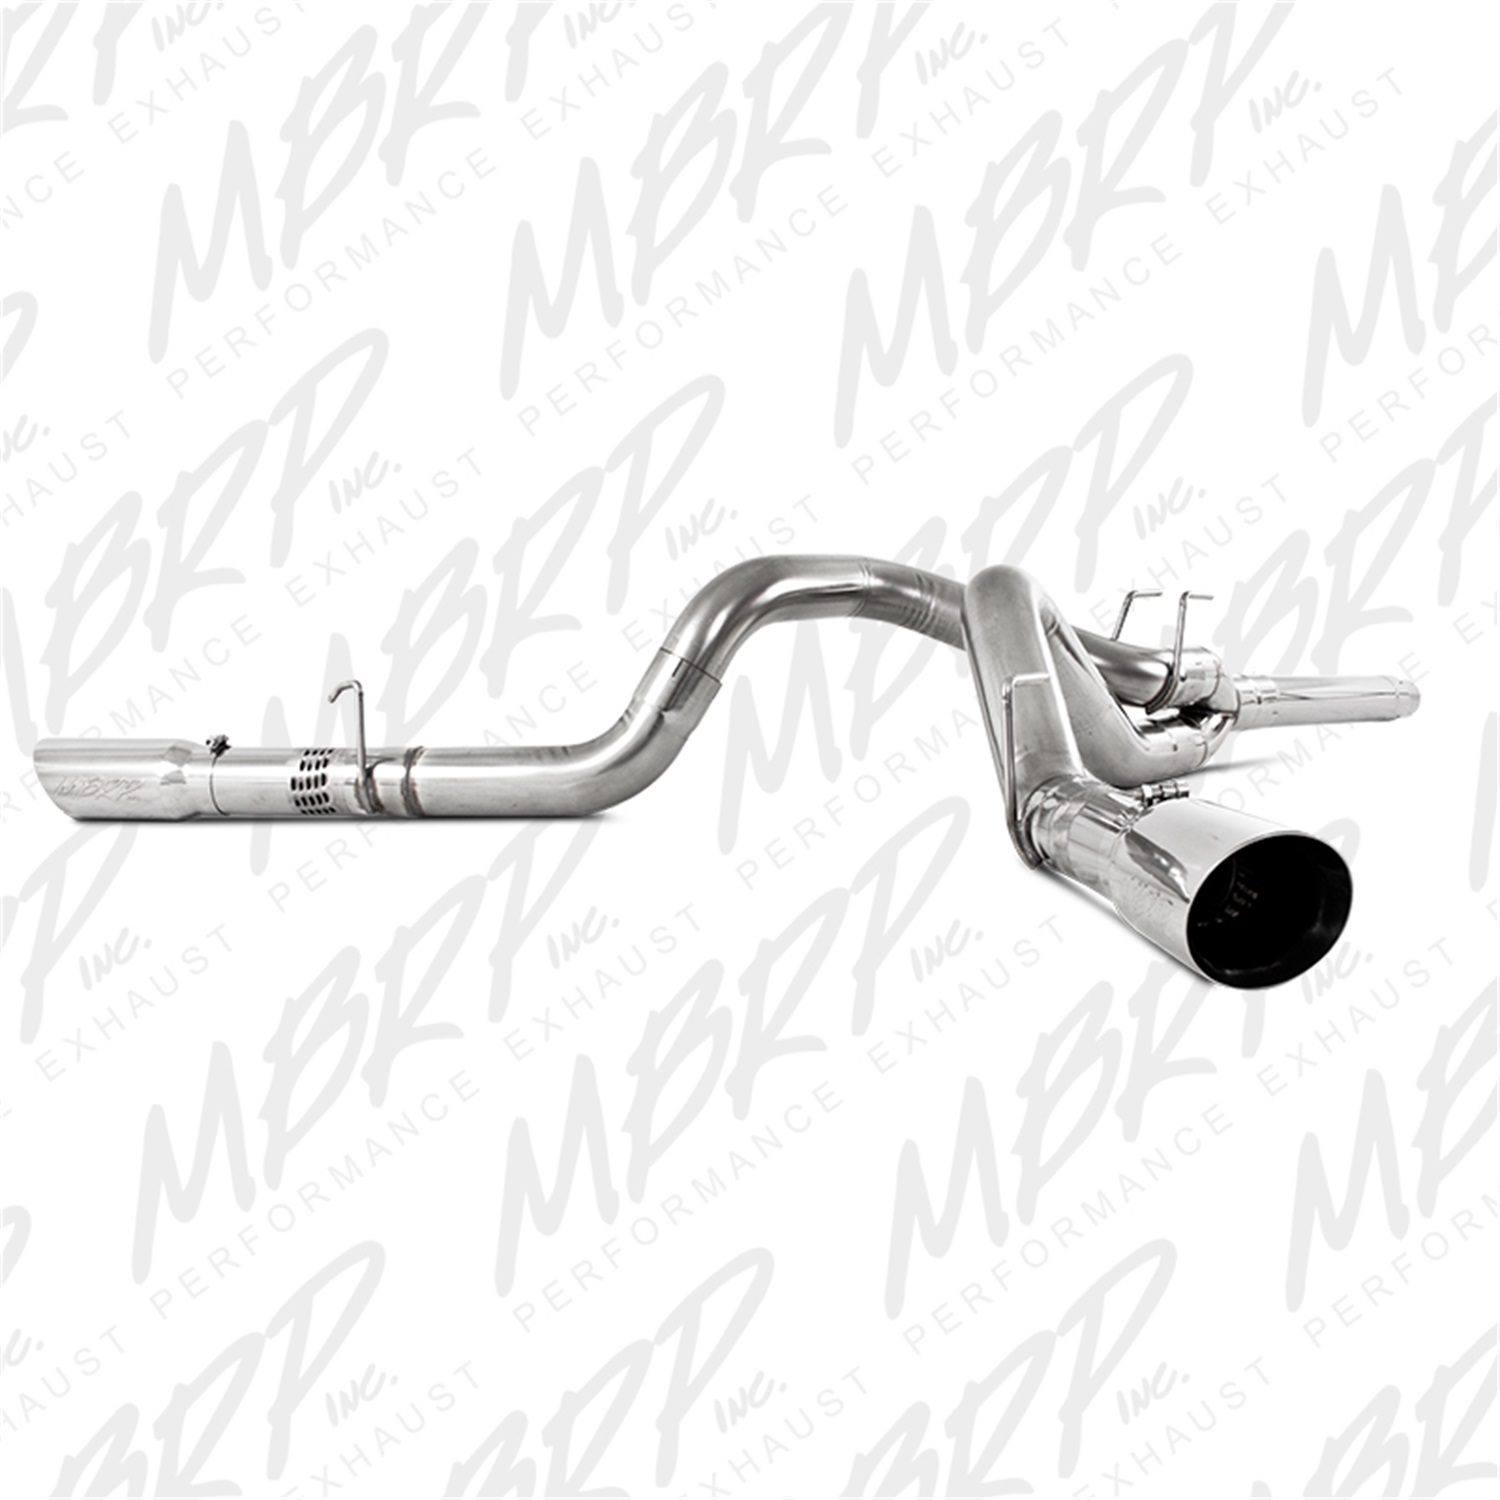 Mbrp Exhaust S Exhaust System Kit